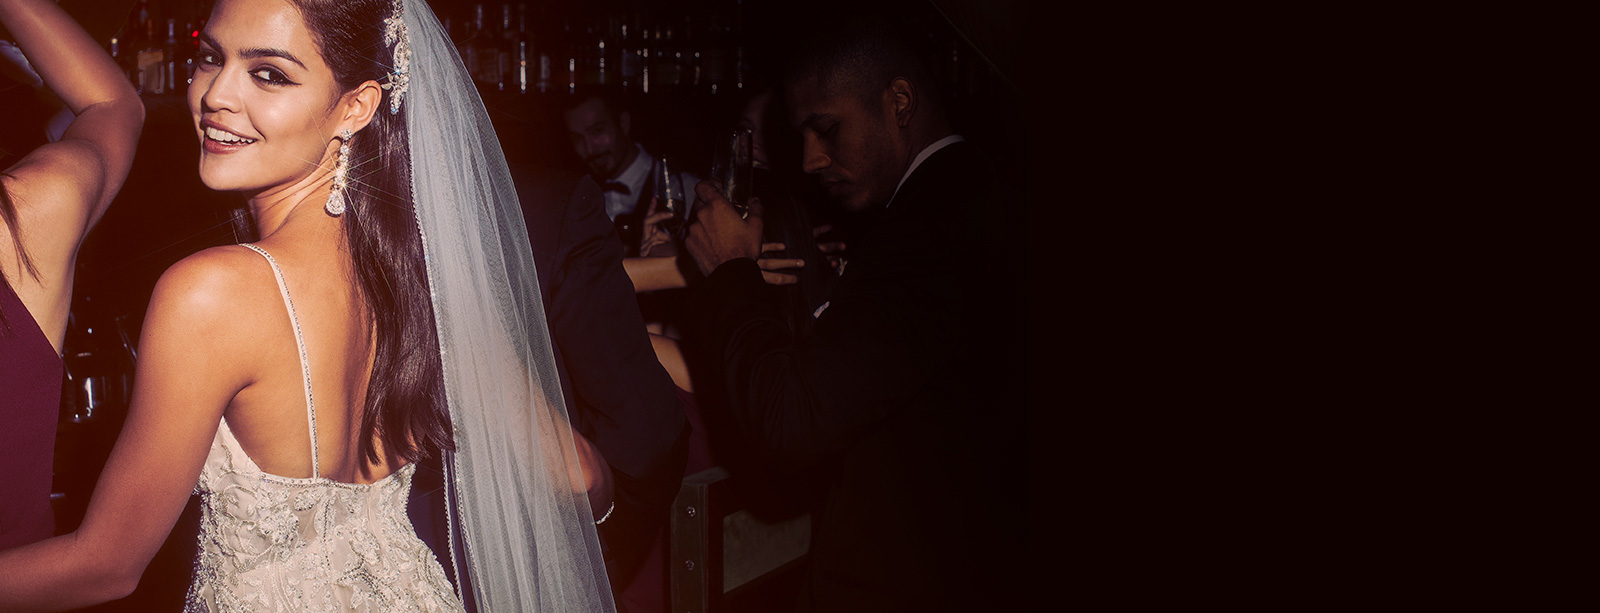 Back shot of bride turning to camera wearing an embellished spaghetti strap gown, statement earrings and long veil